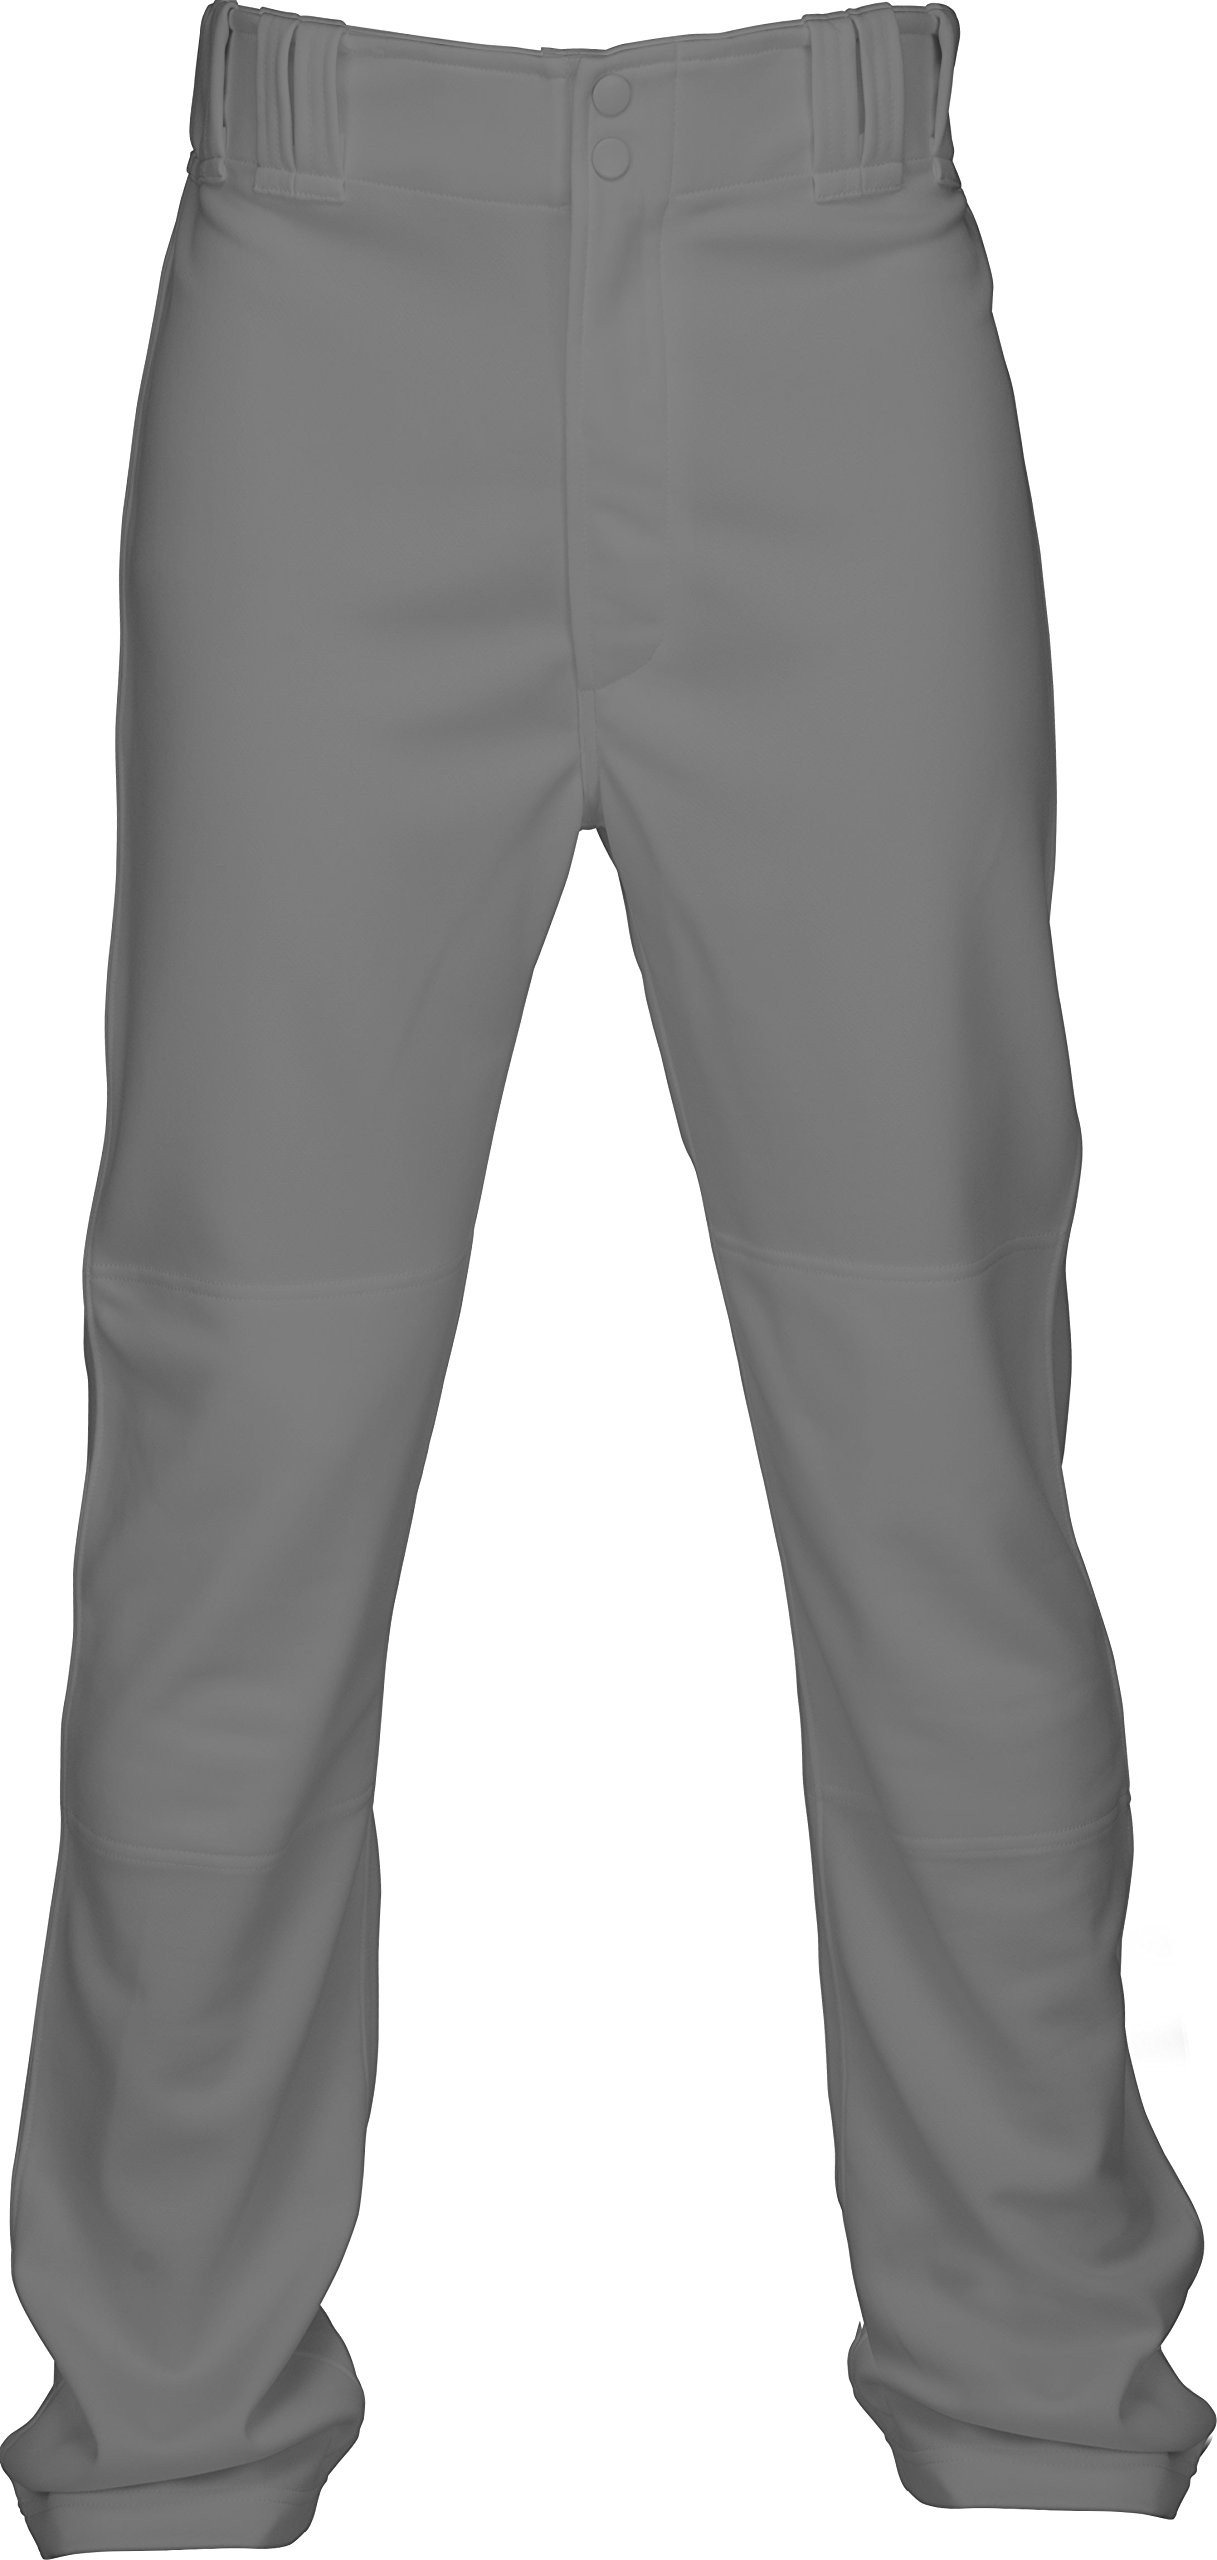 Marucci Youth Performance Stretch Baseball Pant, Gray, Medium by Marucci